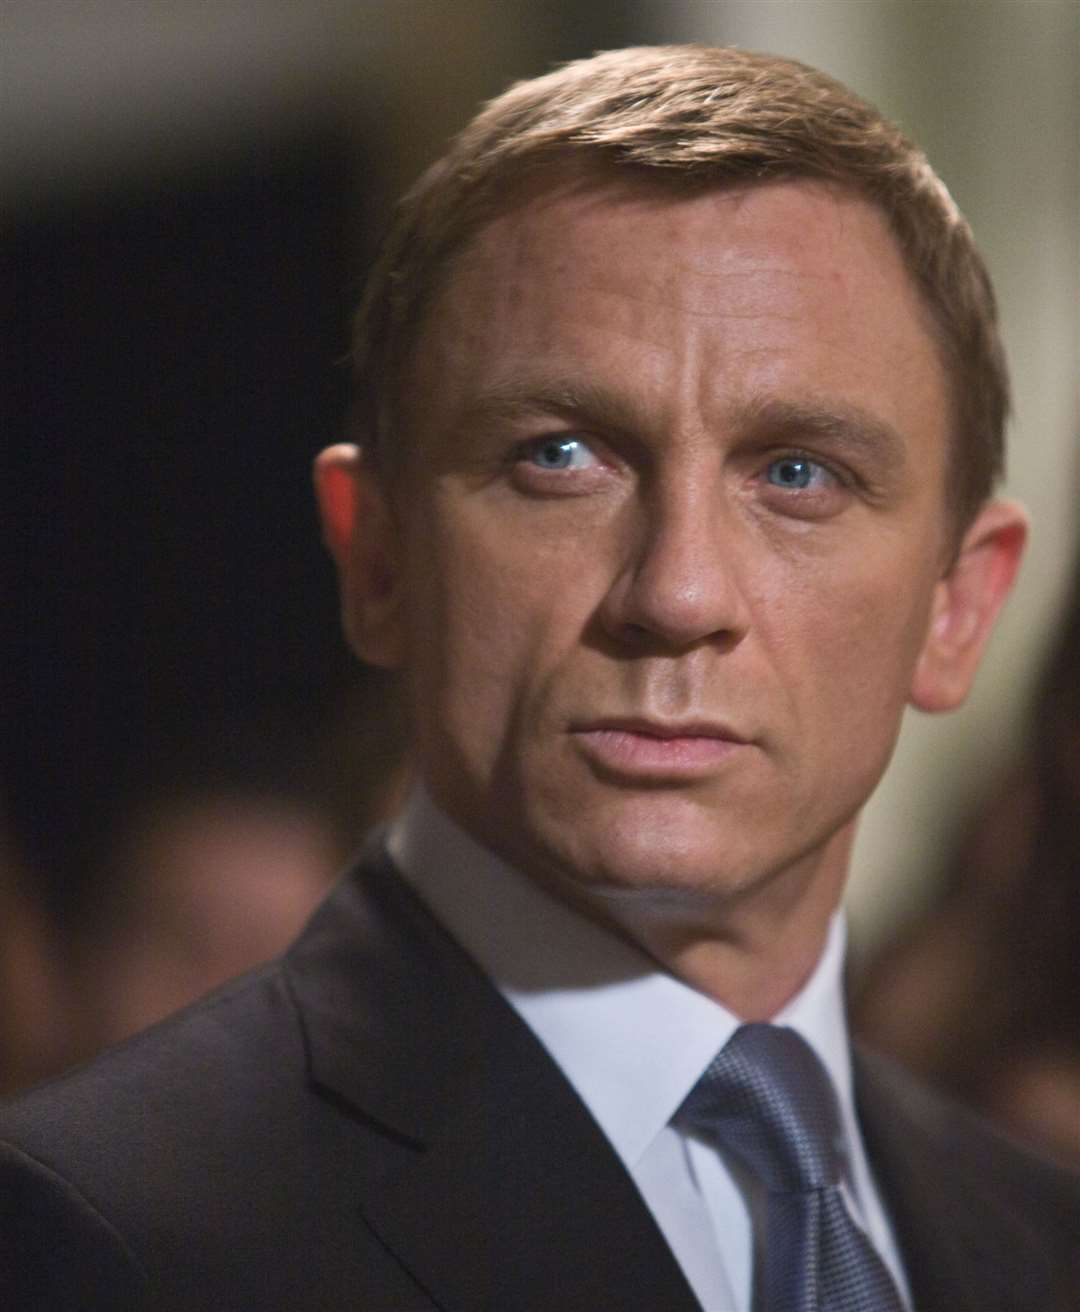 Daniel Craig as James Bond Picture: Sony Pictures Entertainment Inc.